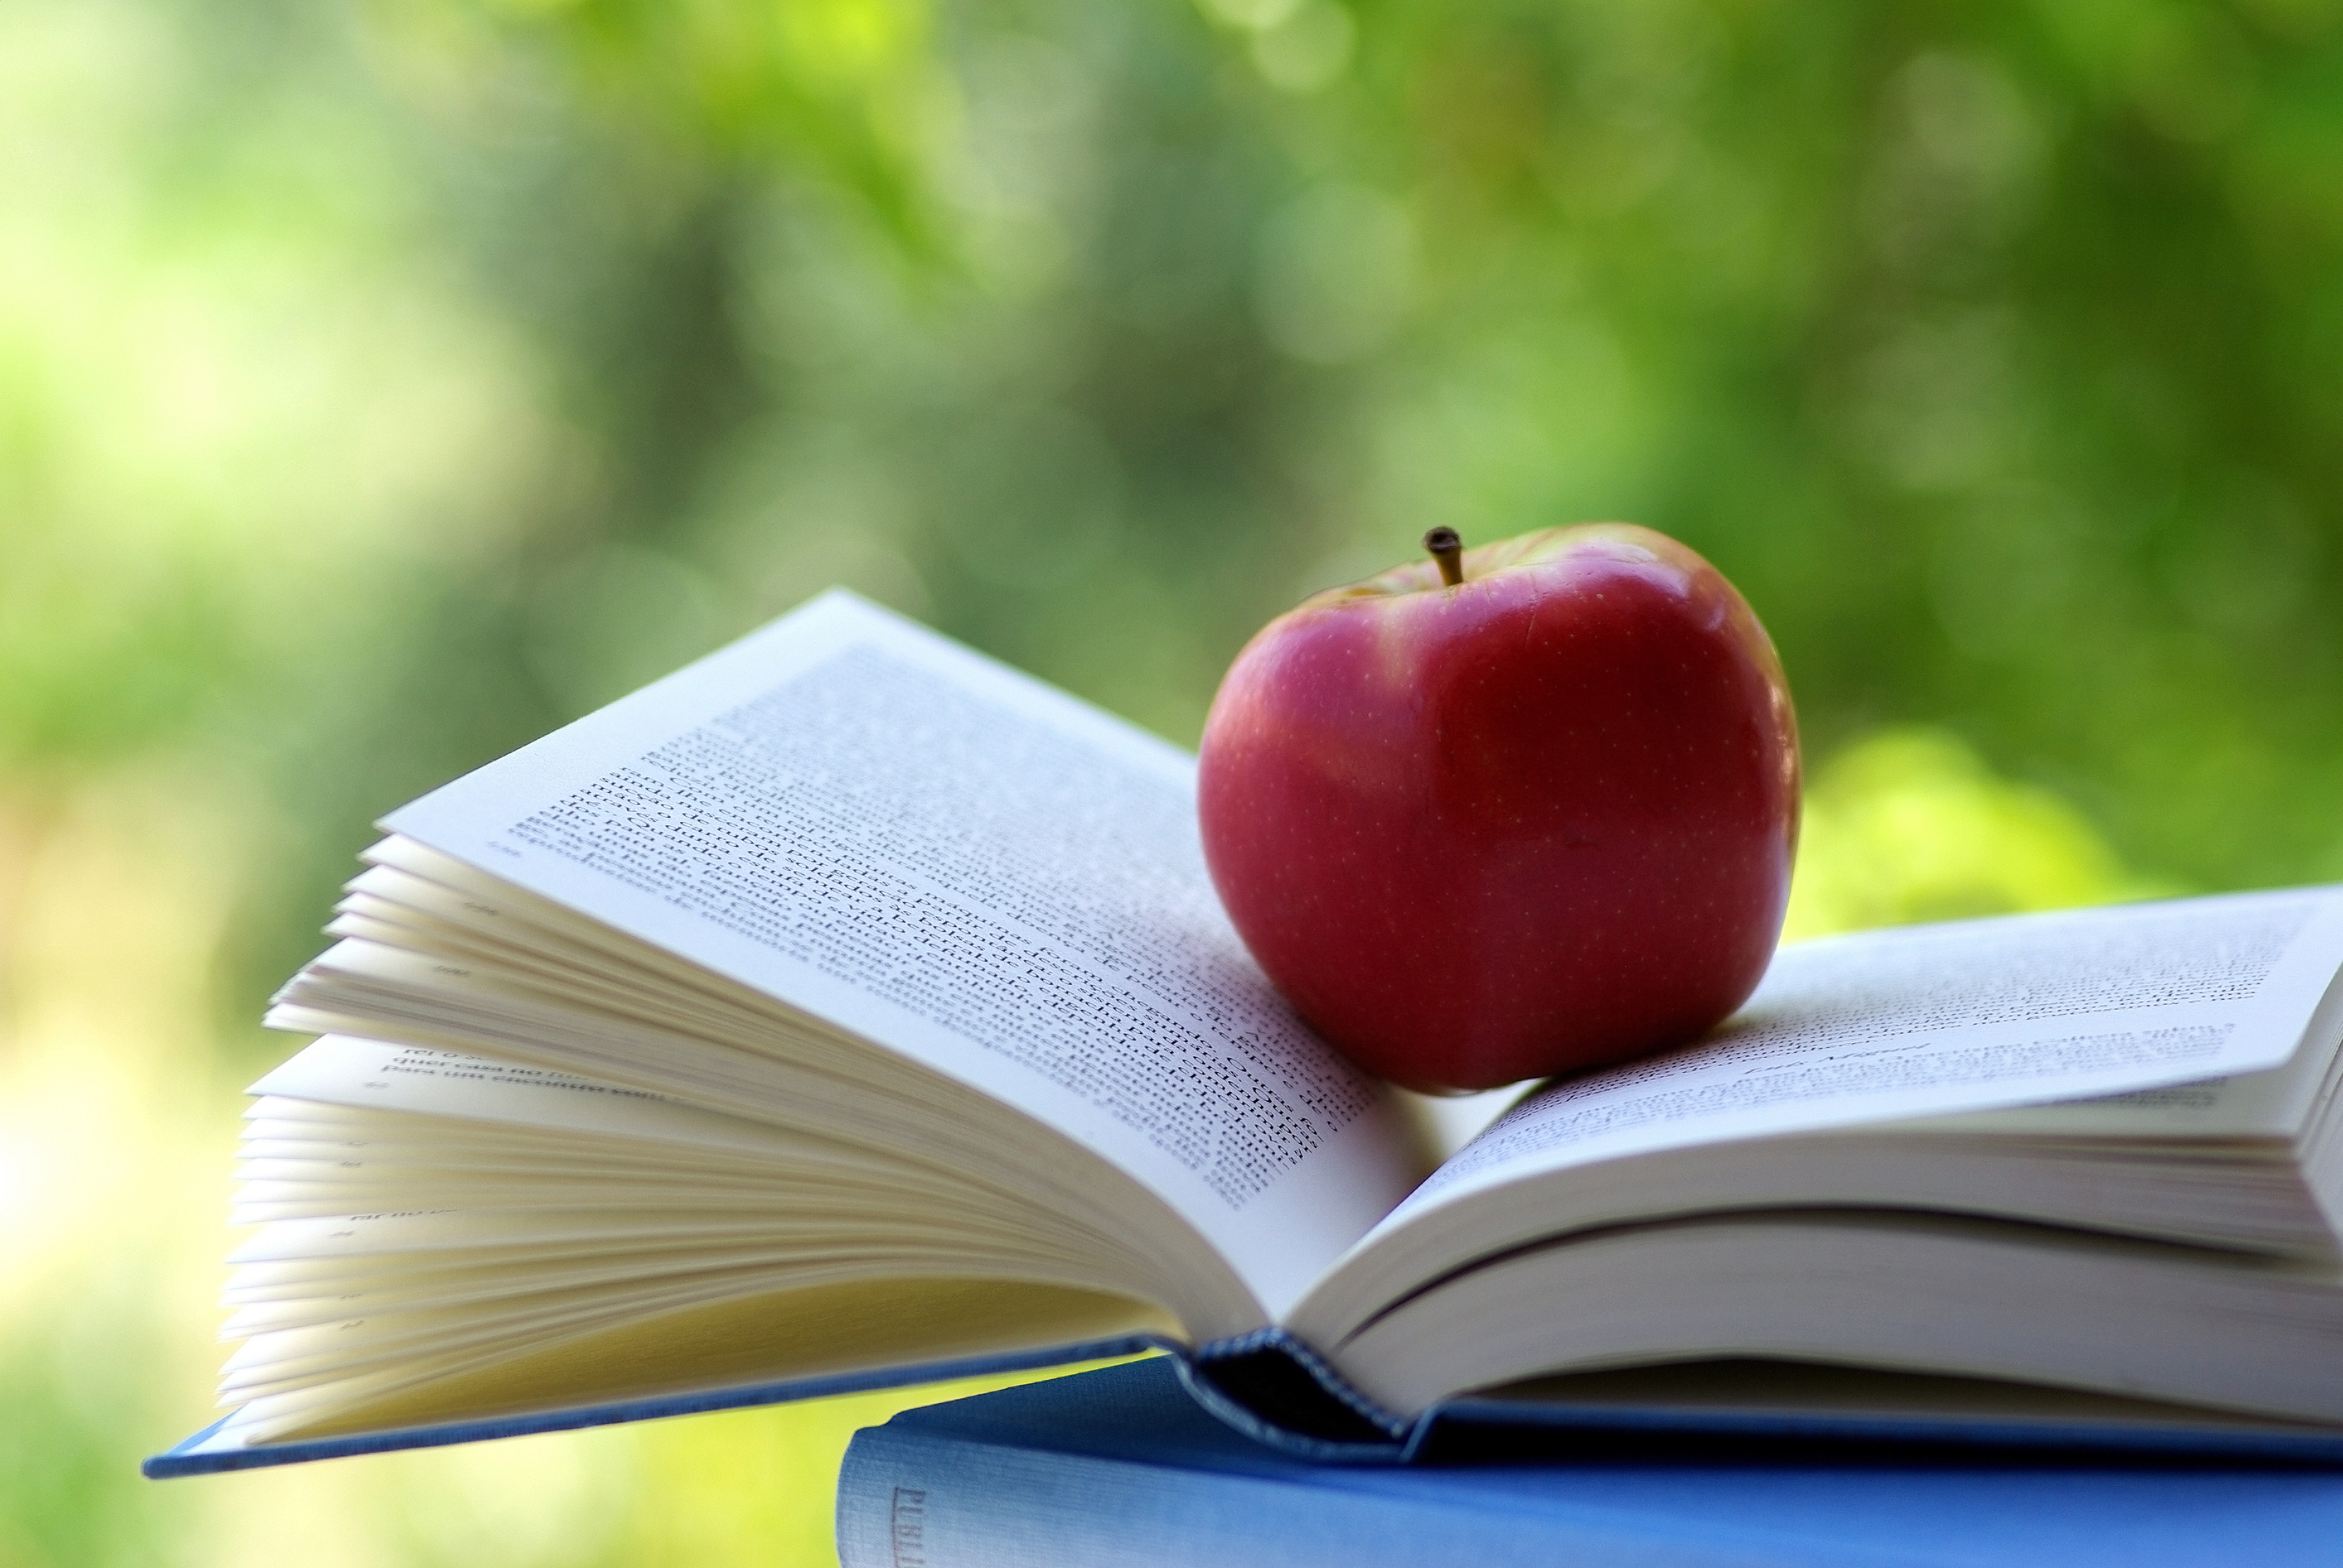 Book and apple photo